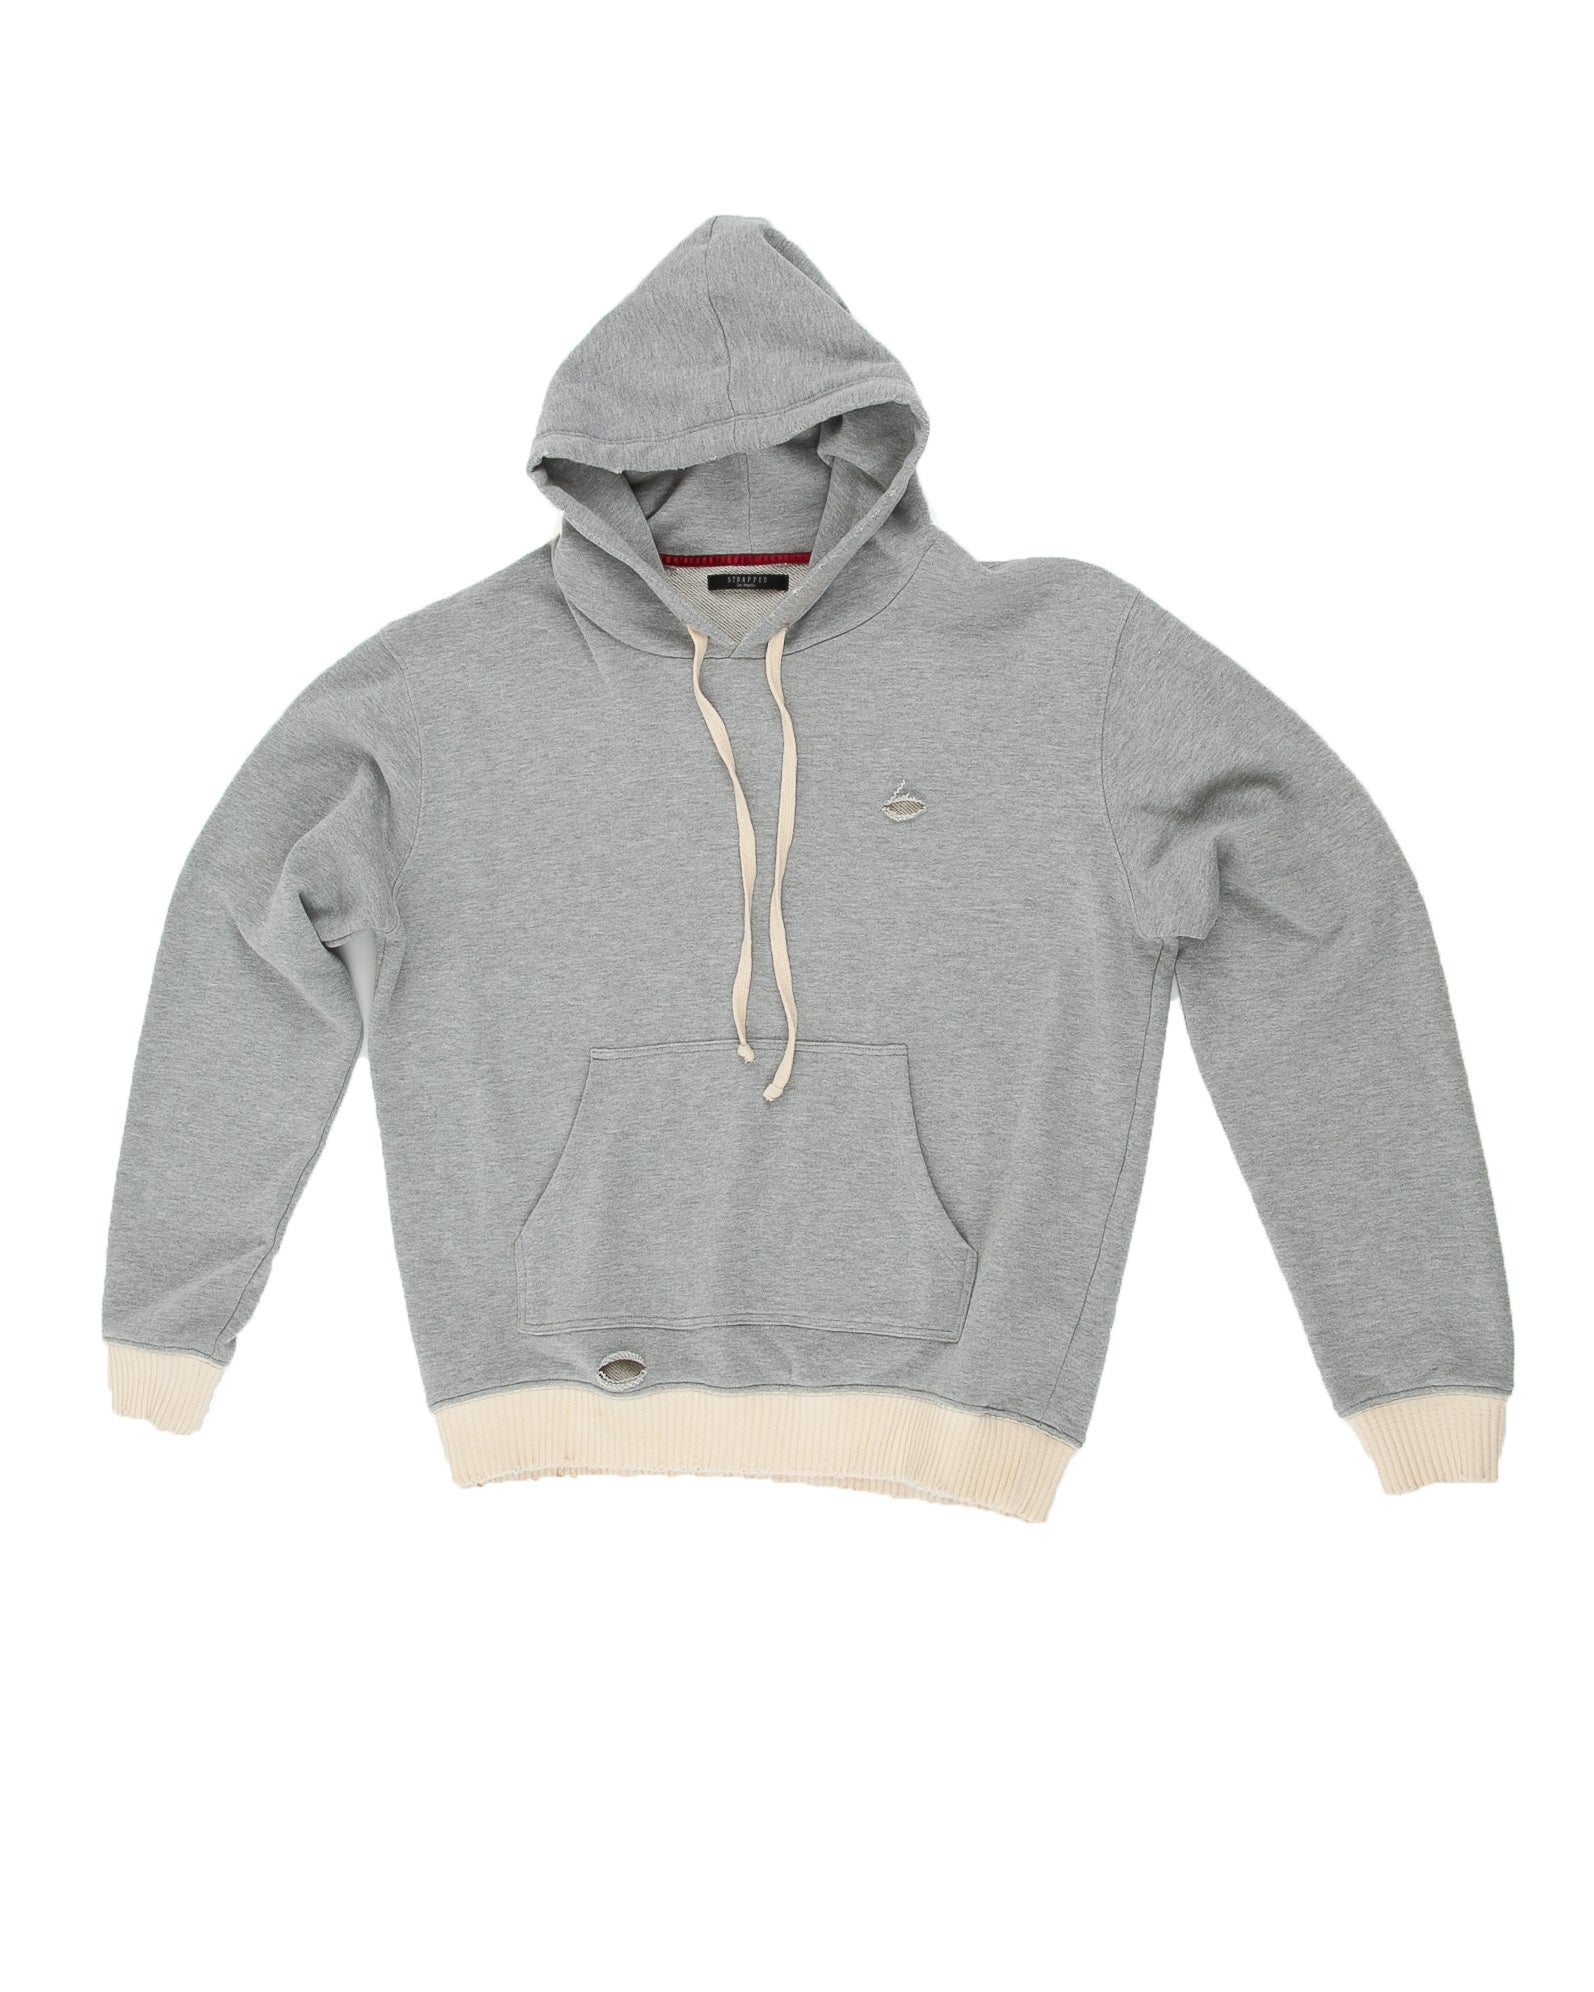 Weighted Hoodie in Heather Grey